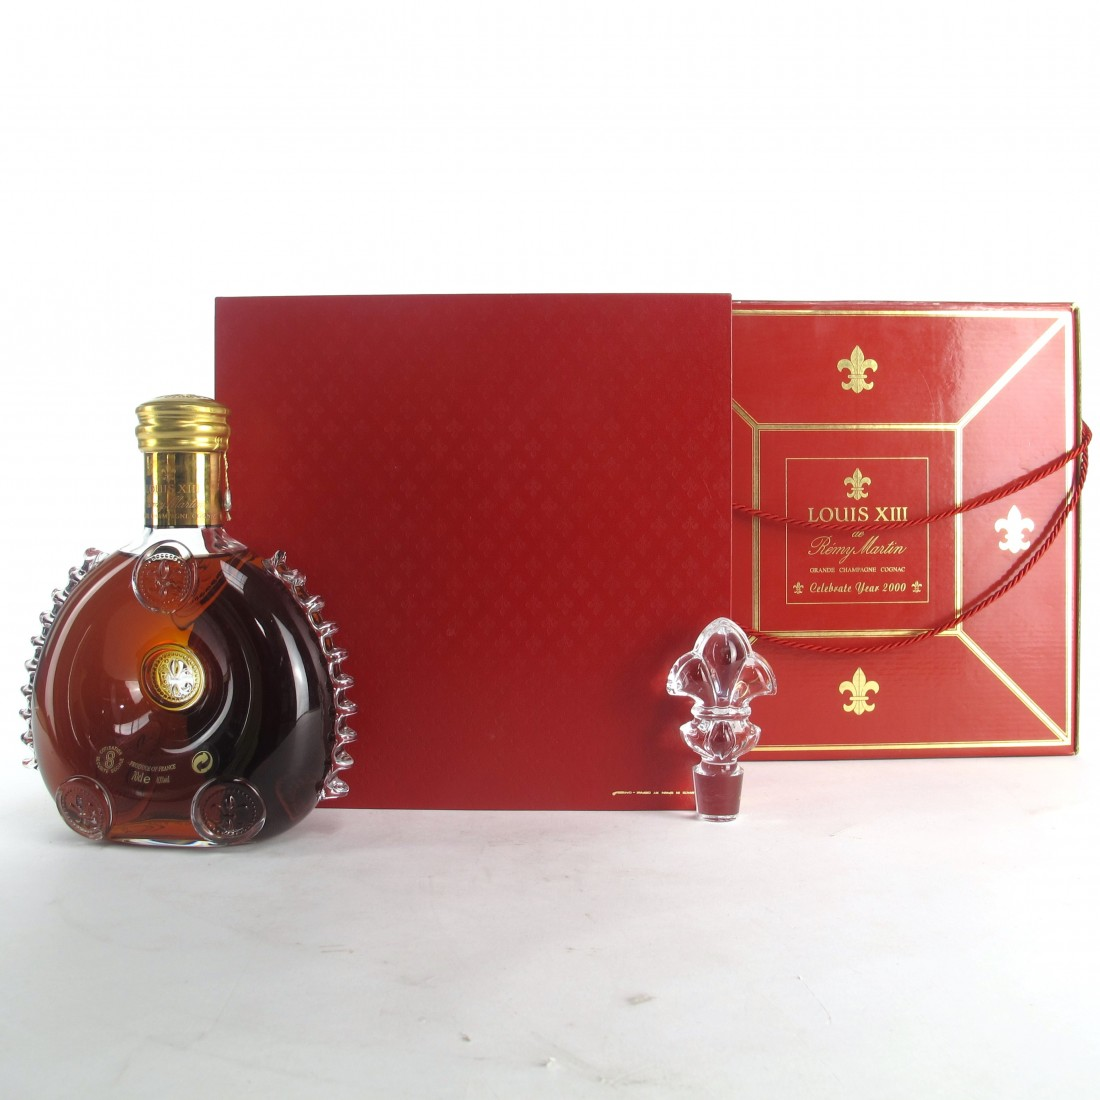 Remy Martin Louis Xiii Cognac Celebrate Year 2000 Edition Whisky Auctioneer